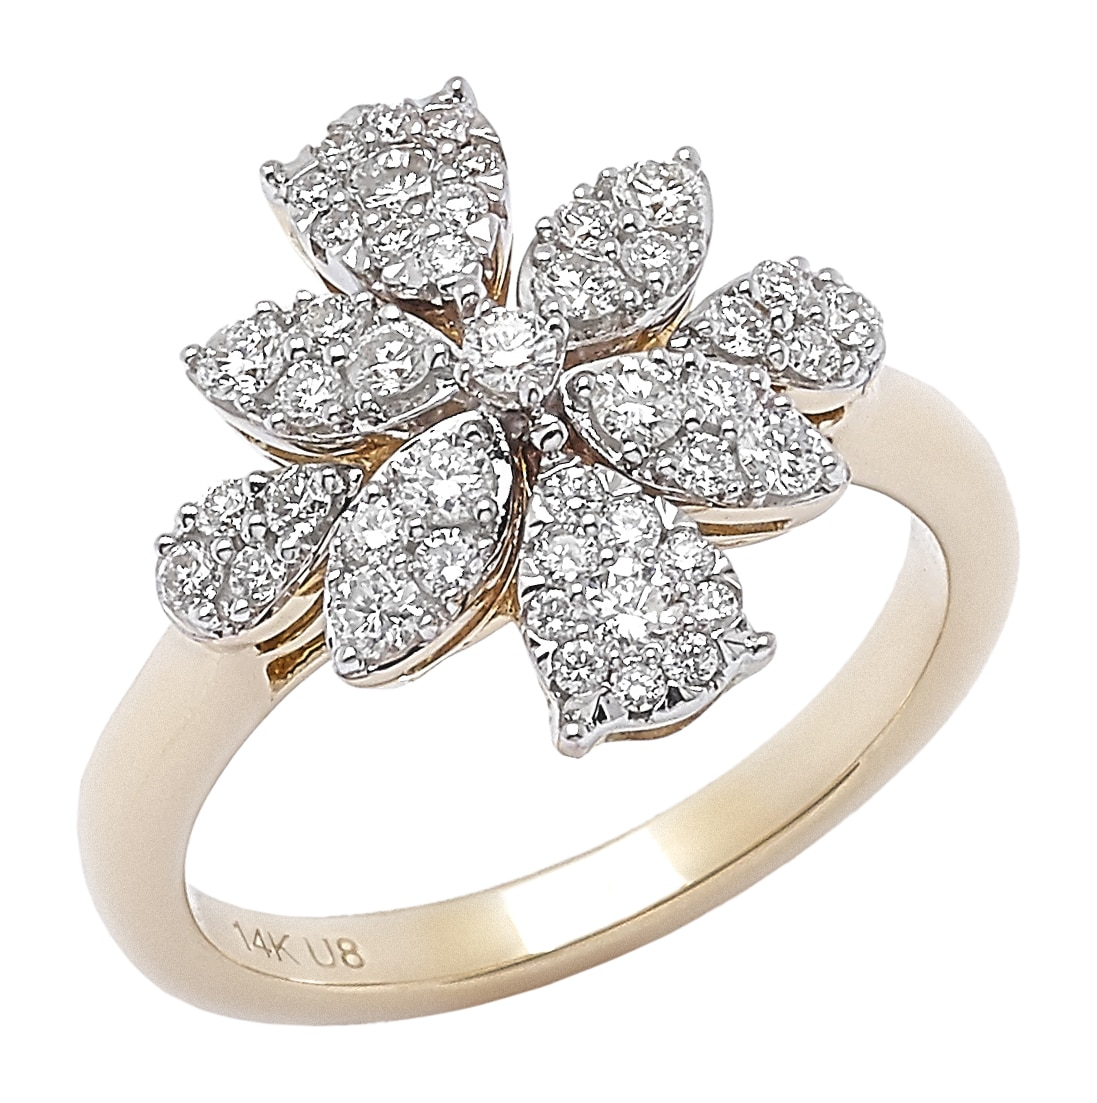 Buy 14K Whimsical Diamond Ring Holiday 2016 Jewellery Rings